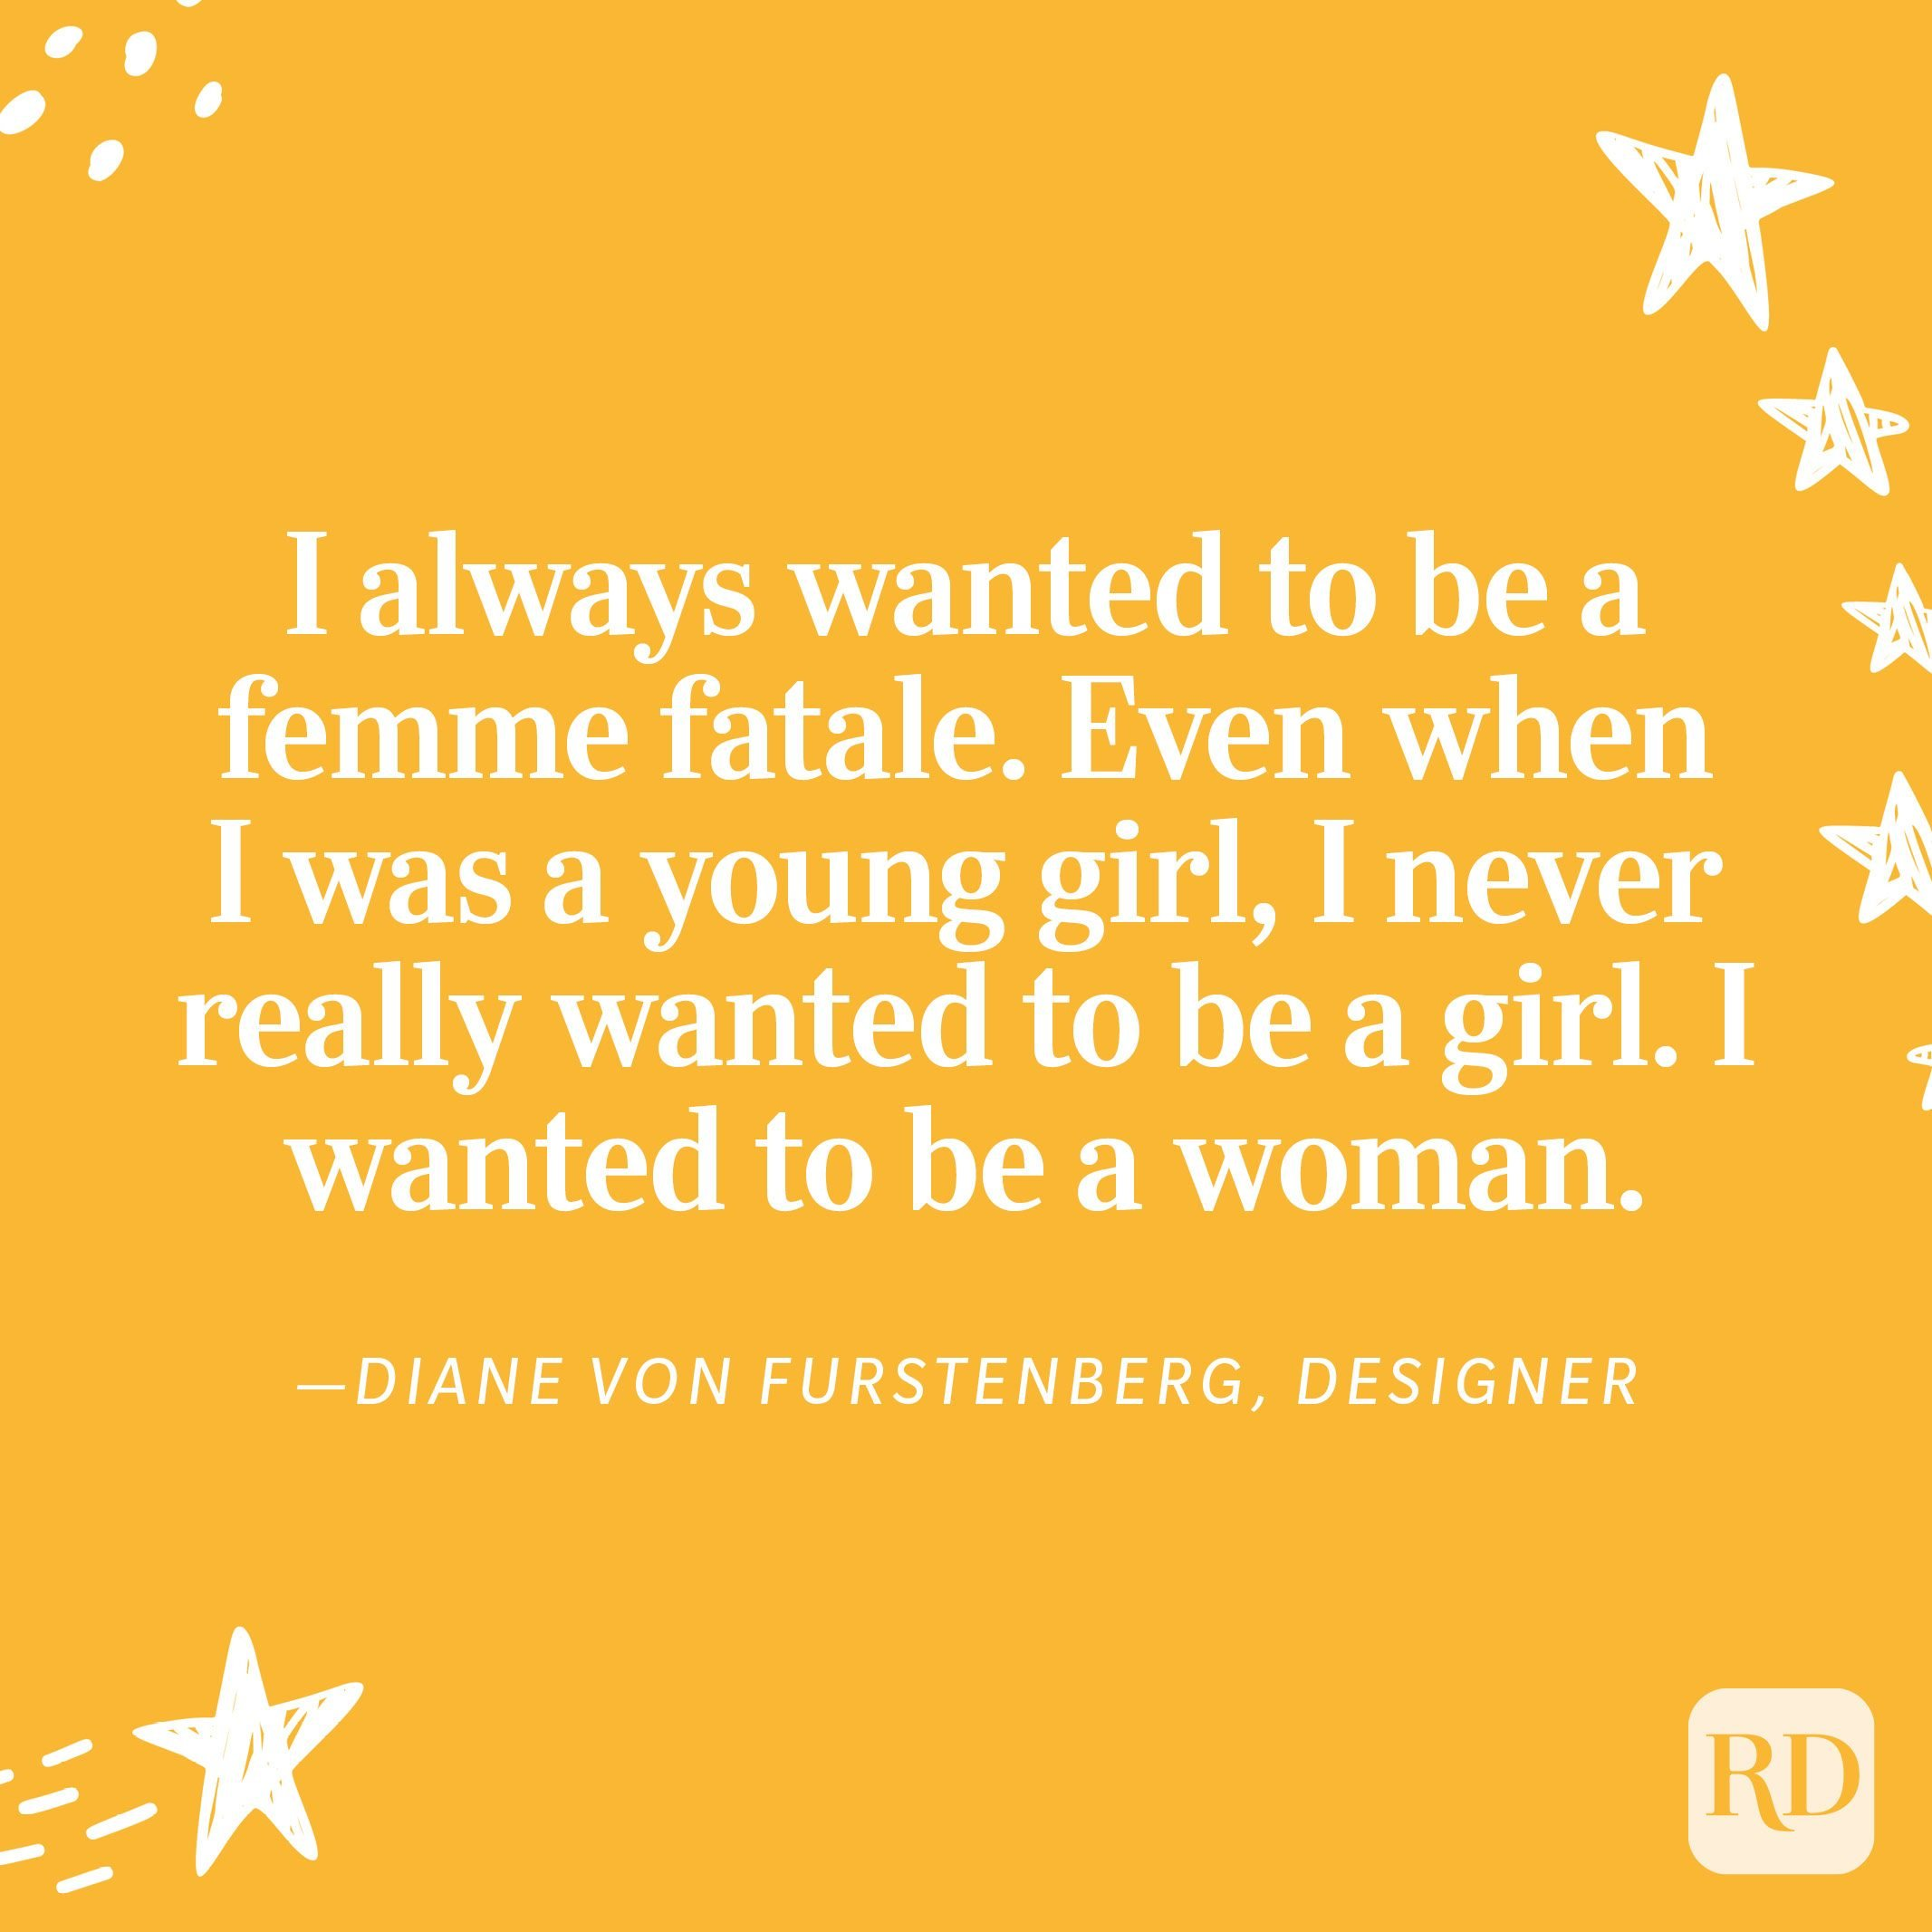 """""""I always wanted to be a femme fatale. Even when I was a young girl, I never really wanted to be a girl. I wanted to be a woman."""" —Diane Von Furstenberg, designer"""